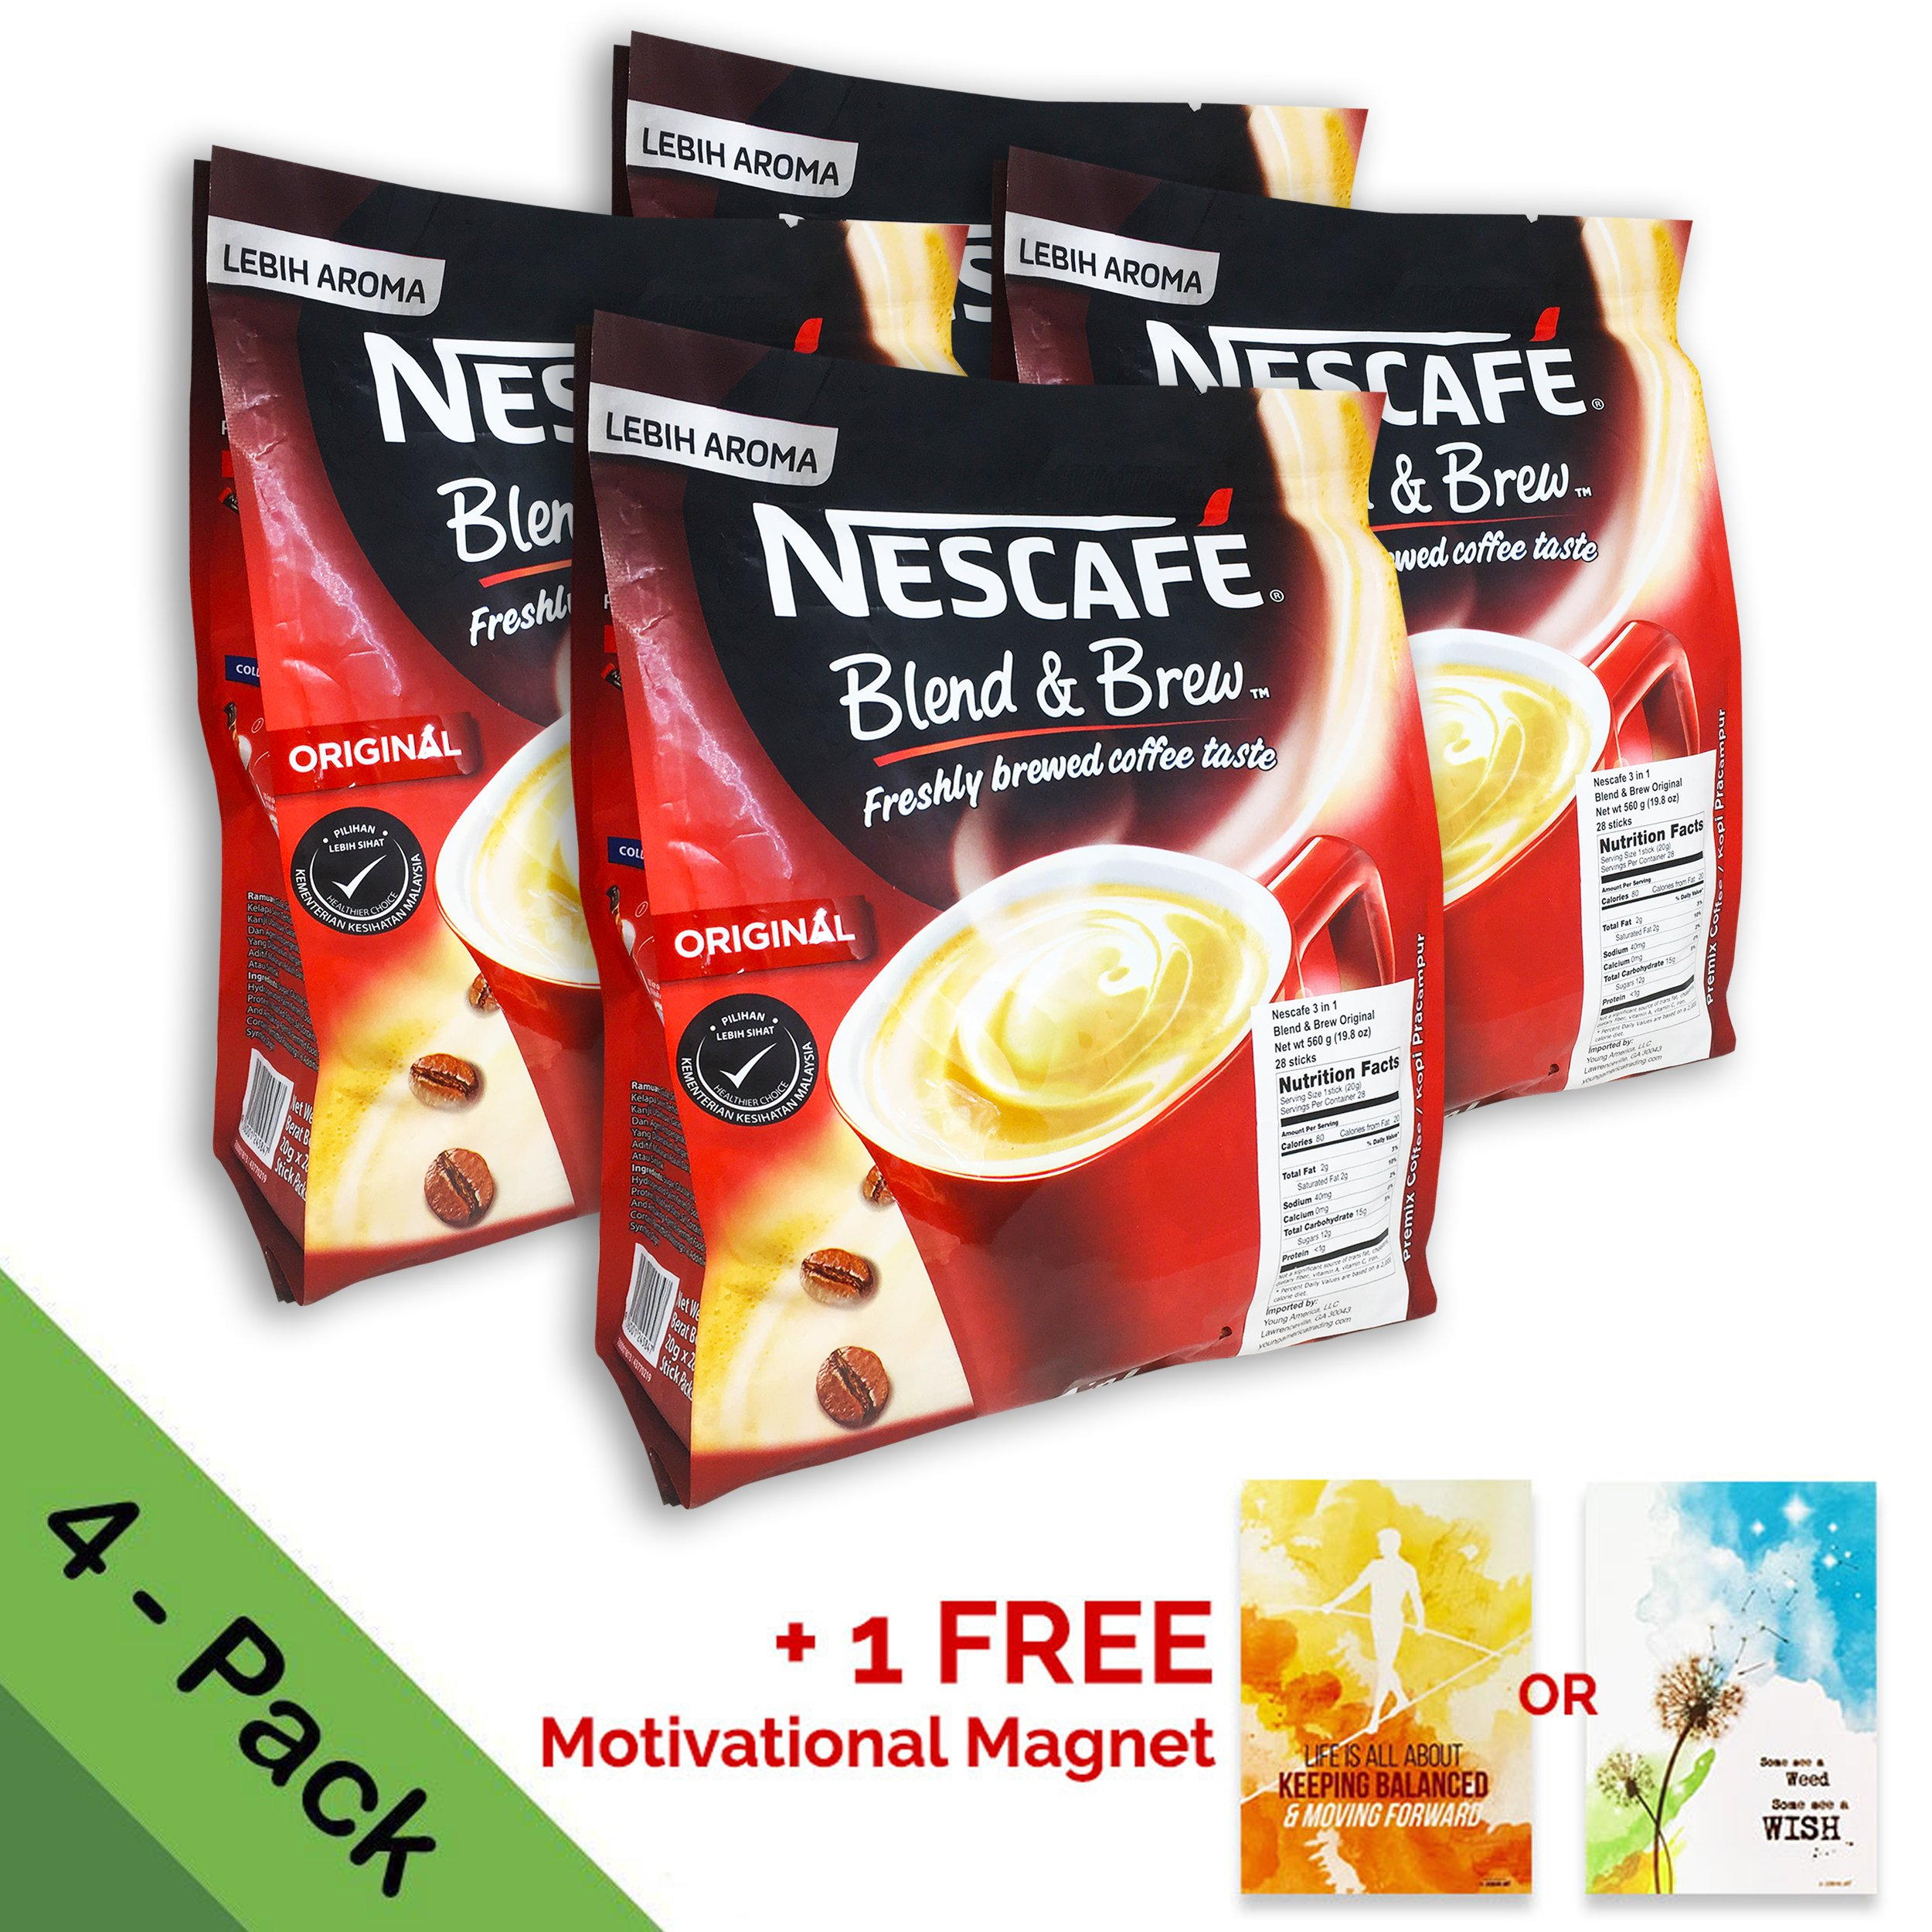 [4 PACK] Nescafé 3 in 1 Instant Coffee Sticks ORIGINAL - Best Asian Coffee Imported from Nestle Malaysia (112 Sticks) by Nescafe